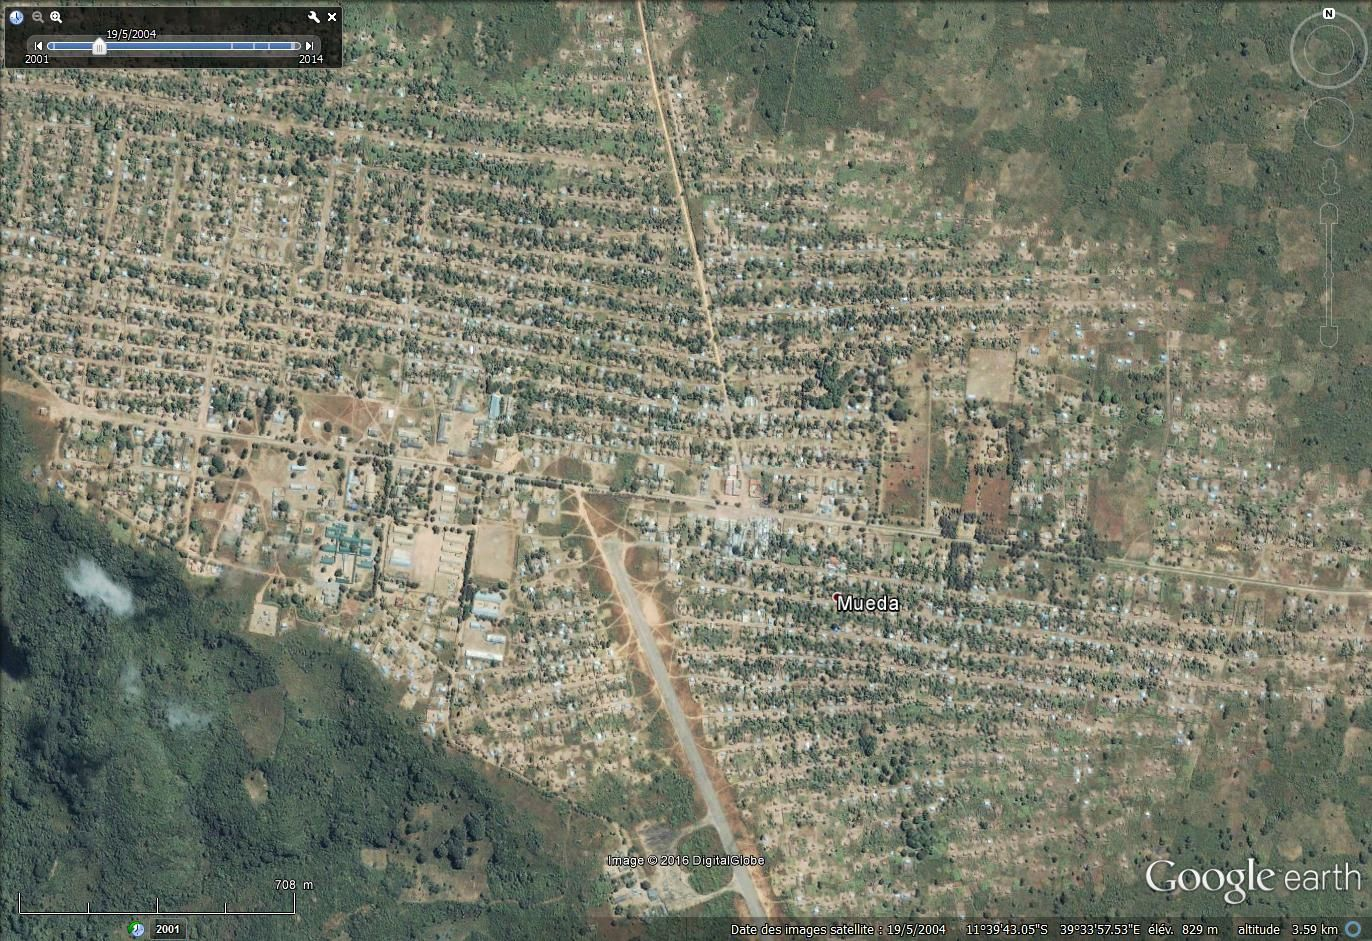 La ville de Mueda : probablement plus de 50 000 habitants Google earth